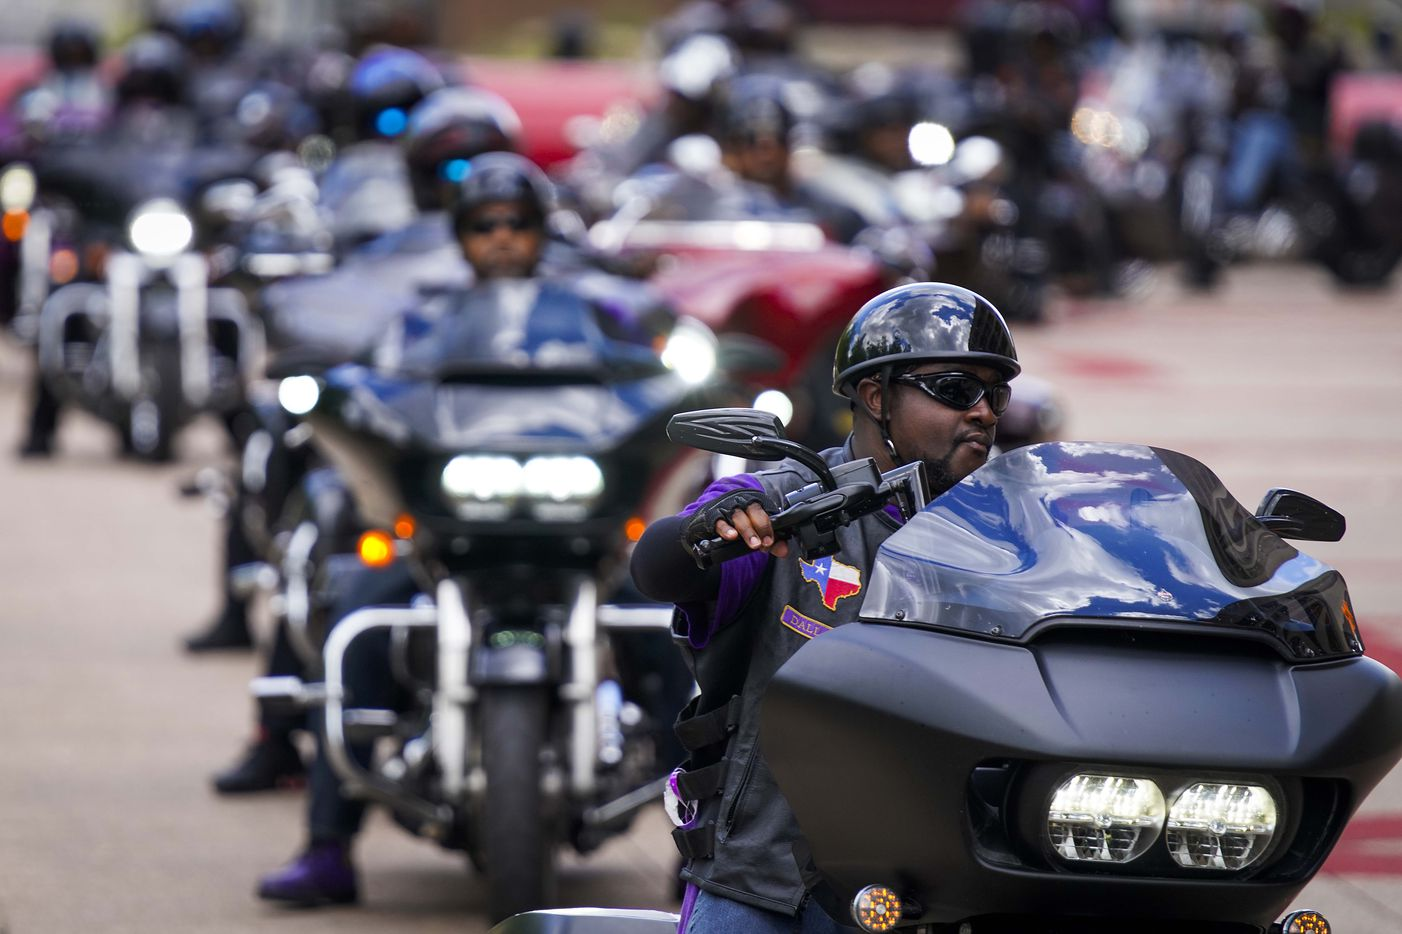 A group of over 400 bikers arrives at Dallas City Hall during a ride and rally commemorating Juneteenth on Friday, June 19, 2020.